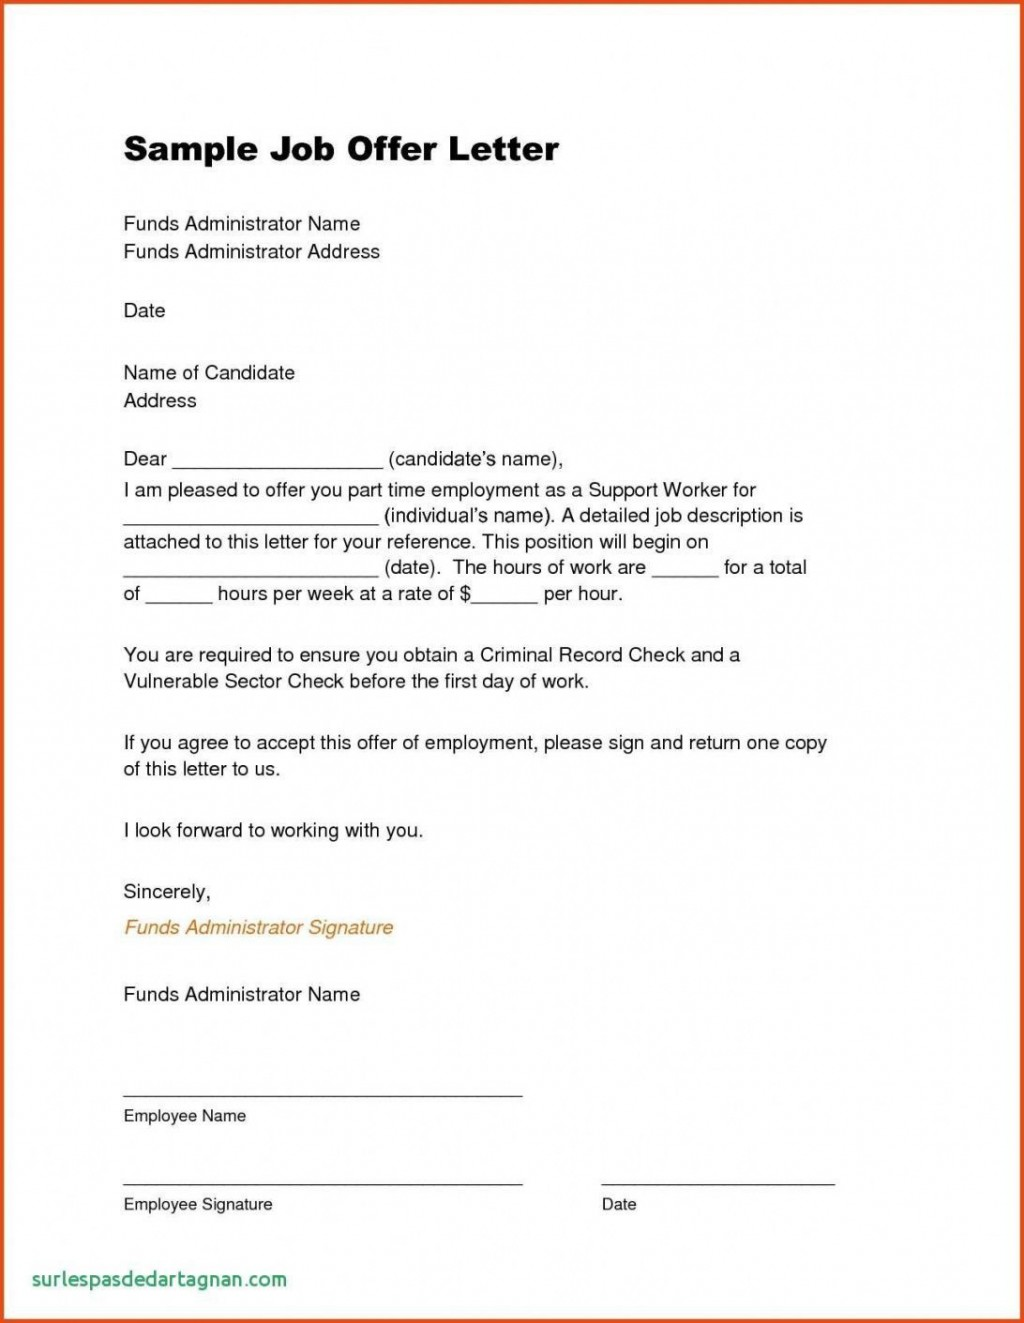 005 Impressive Home Offer Letter Template Highest Quality  PurchaseLarge